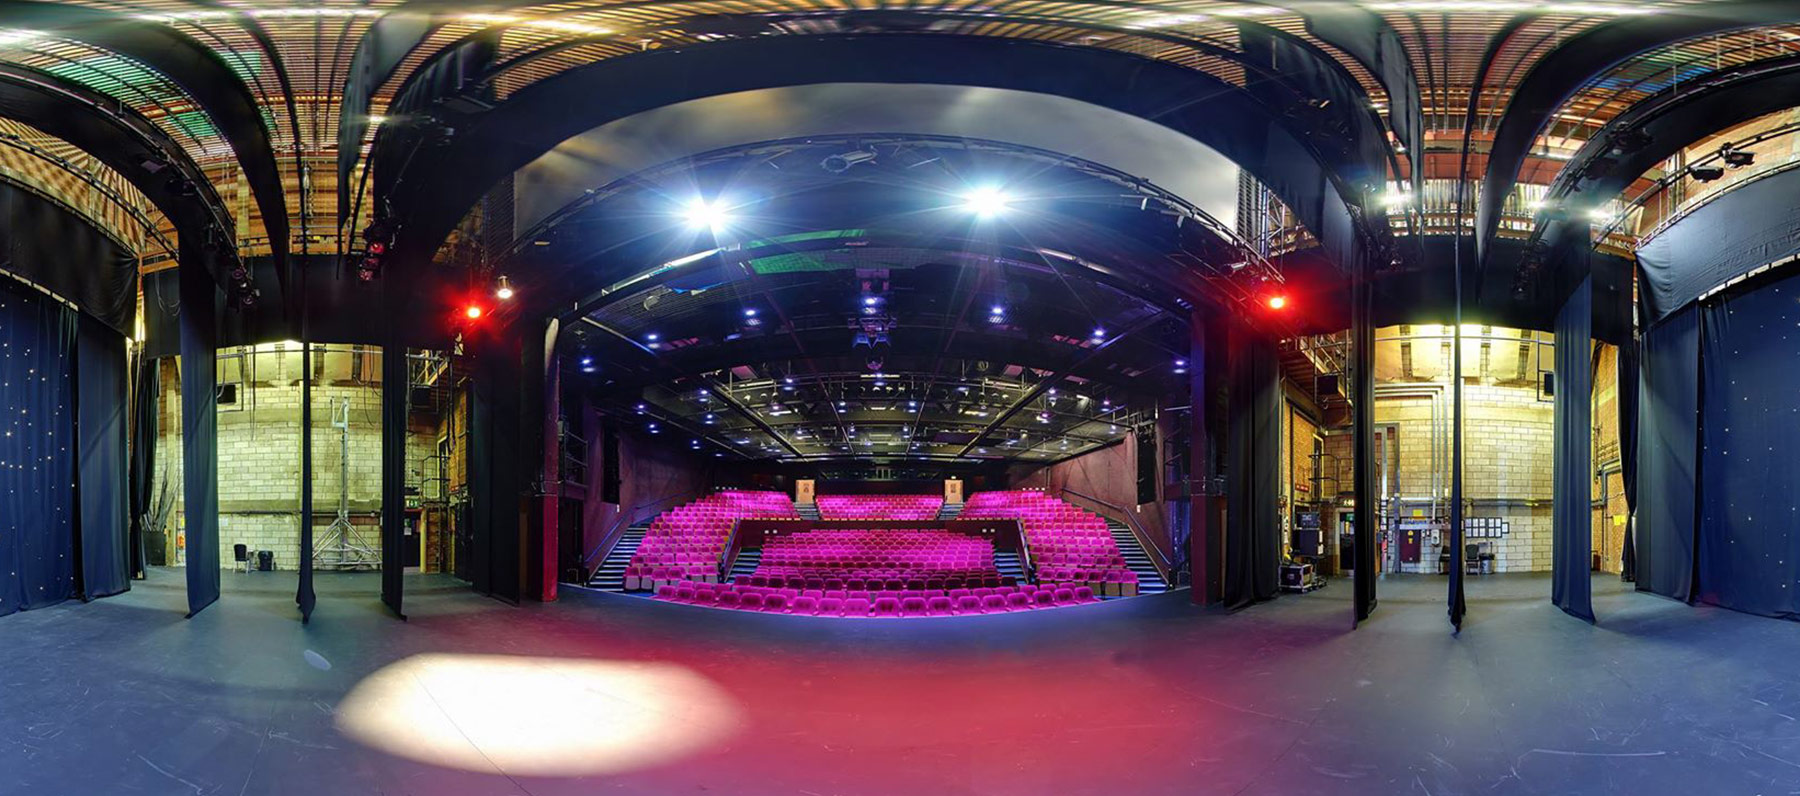 Wyvern Theatre